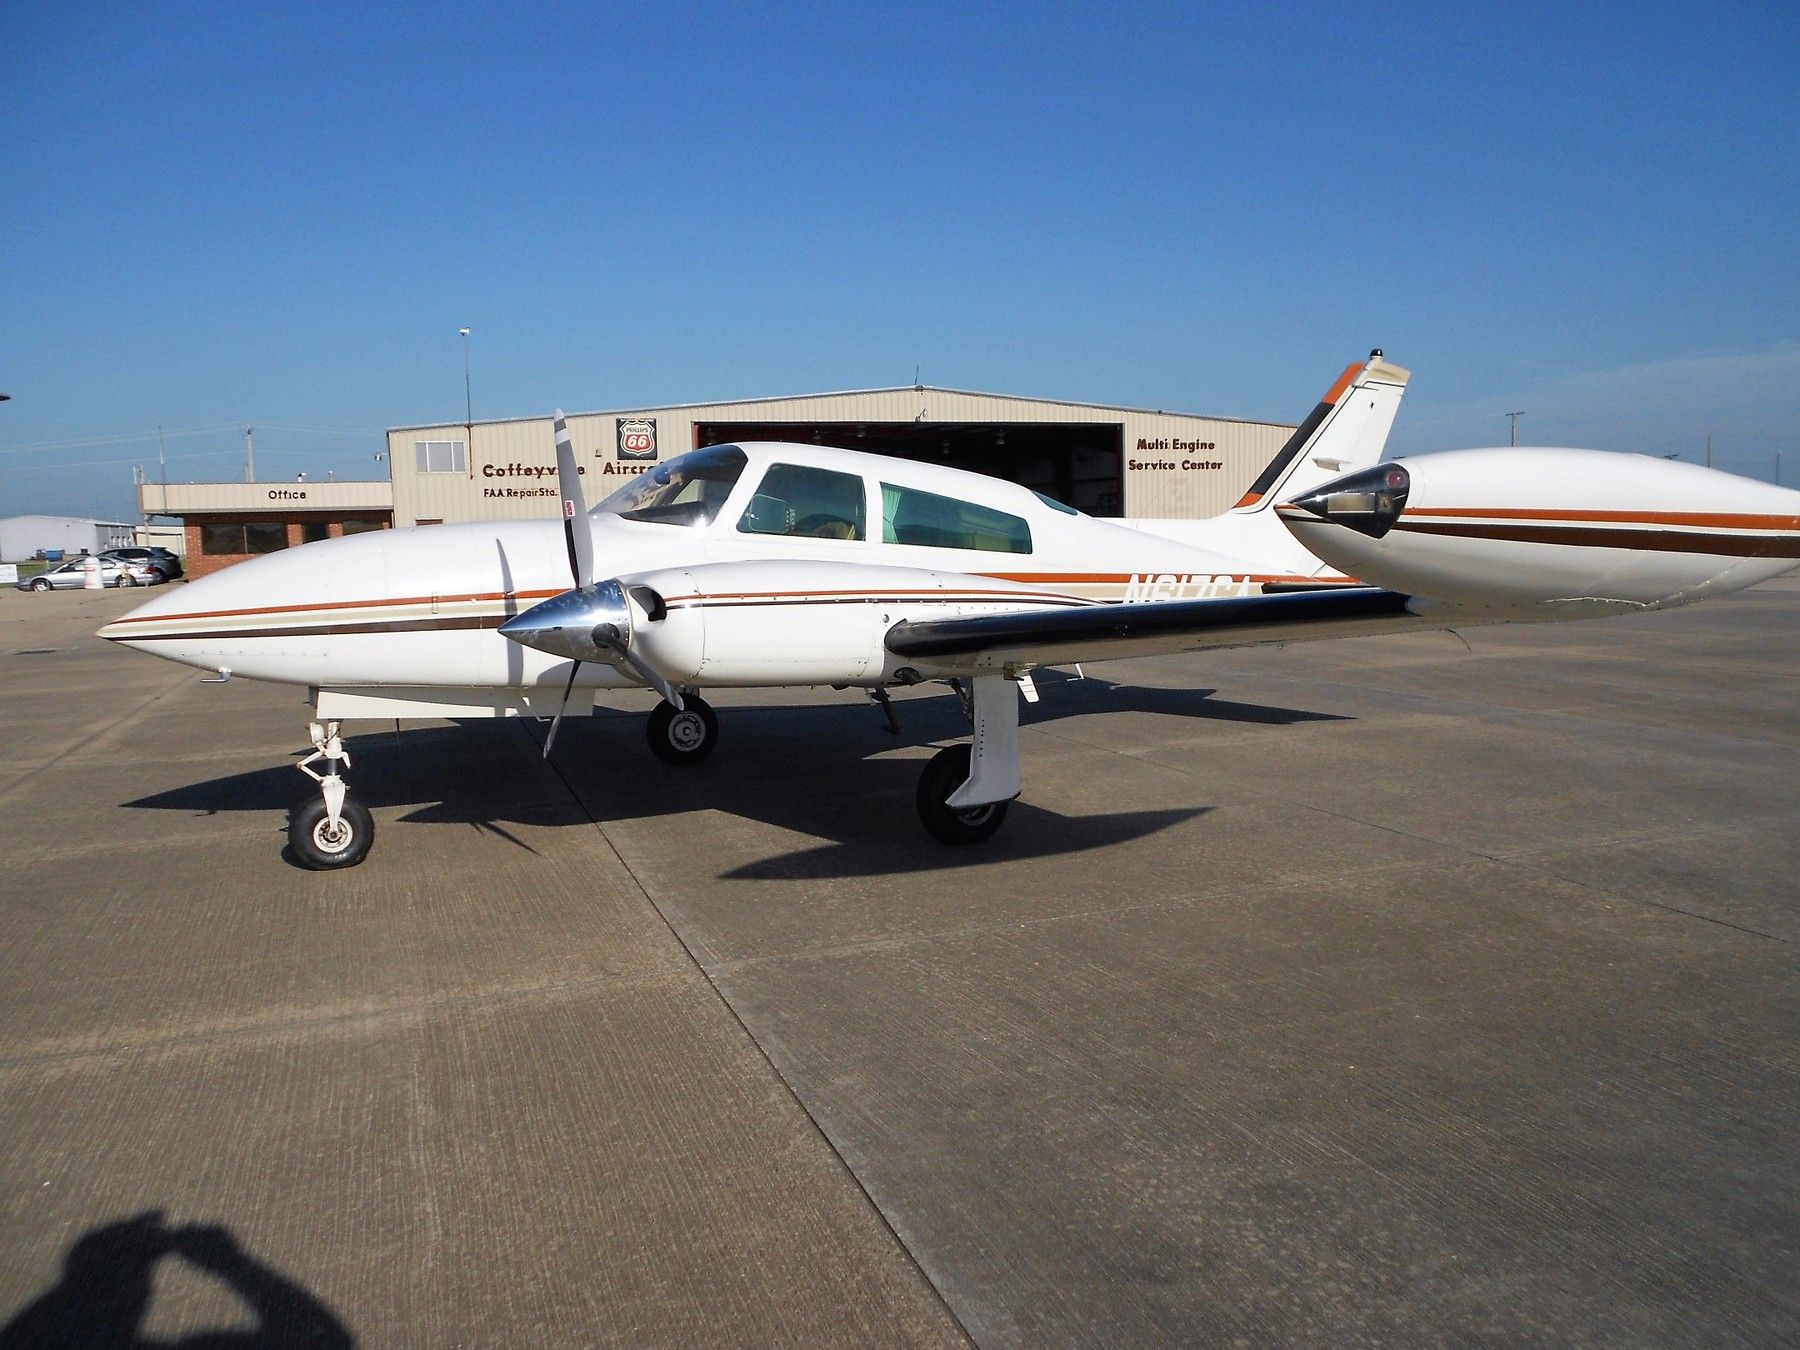 1978 Cessna 310R for sale in (CFV) COFFEYVILLE, KS USA => www.AirplaneMart.com/aircraft-for-sale/Multi-Engine-Piston/1978-Cessna-310R/14416/